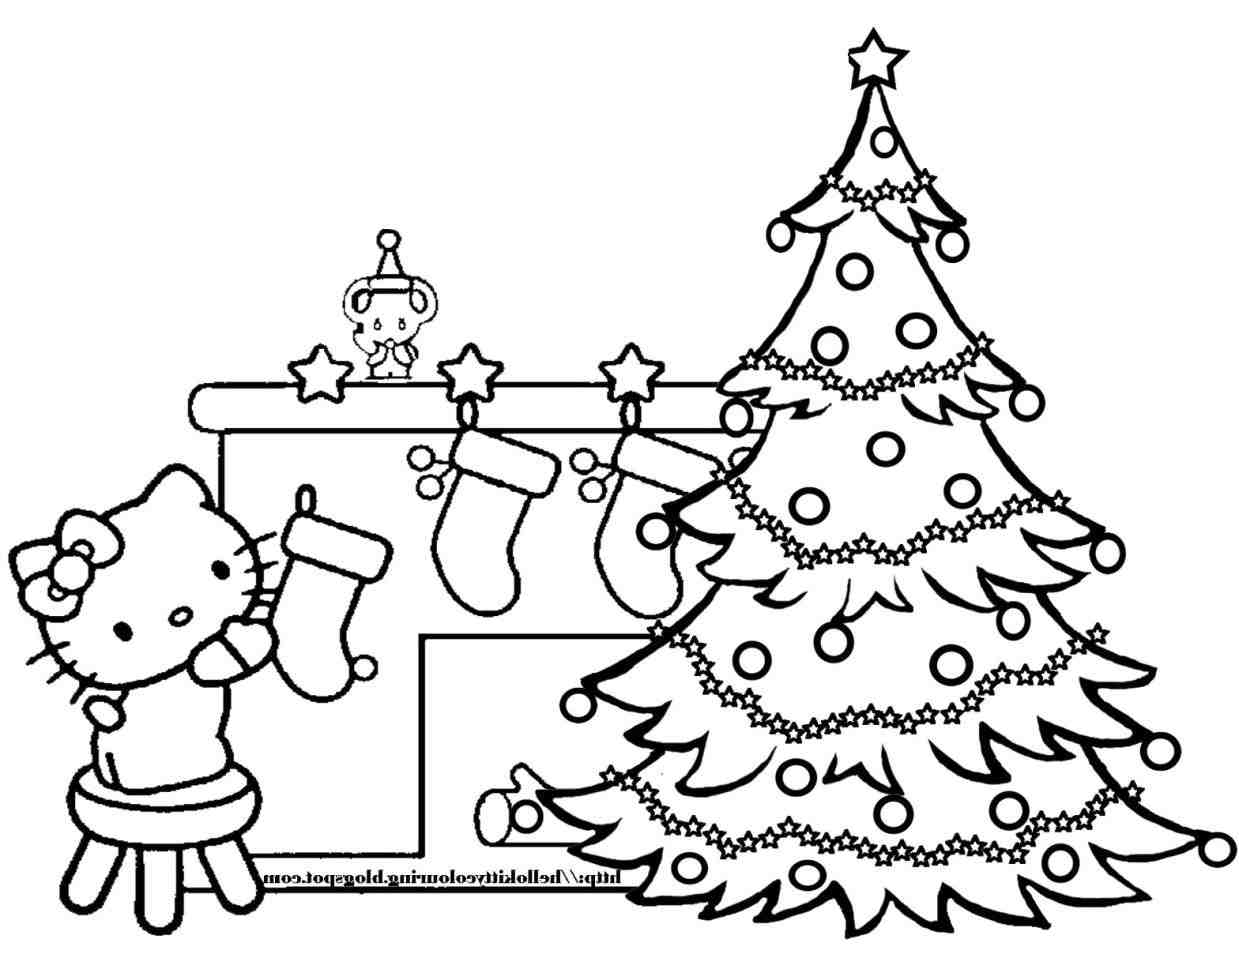 1239x969 Christmas Line Drawings Clip Art Tags Christmas Line Drawing How